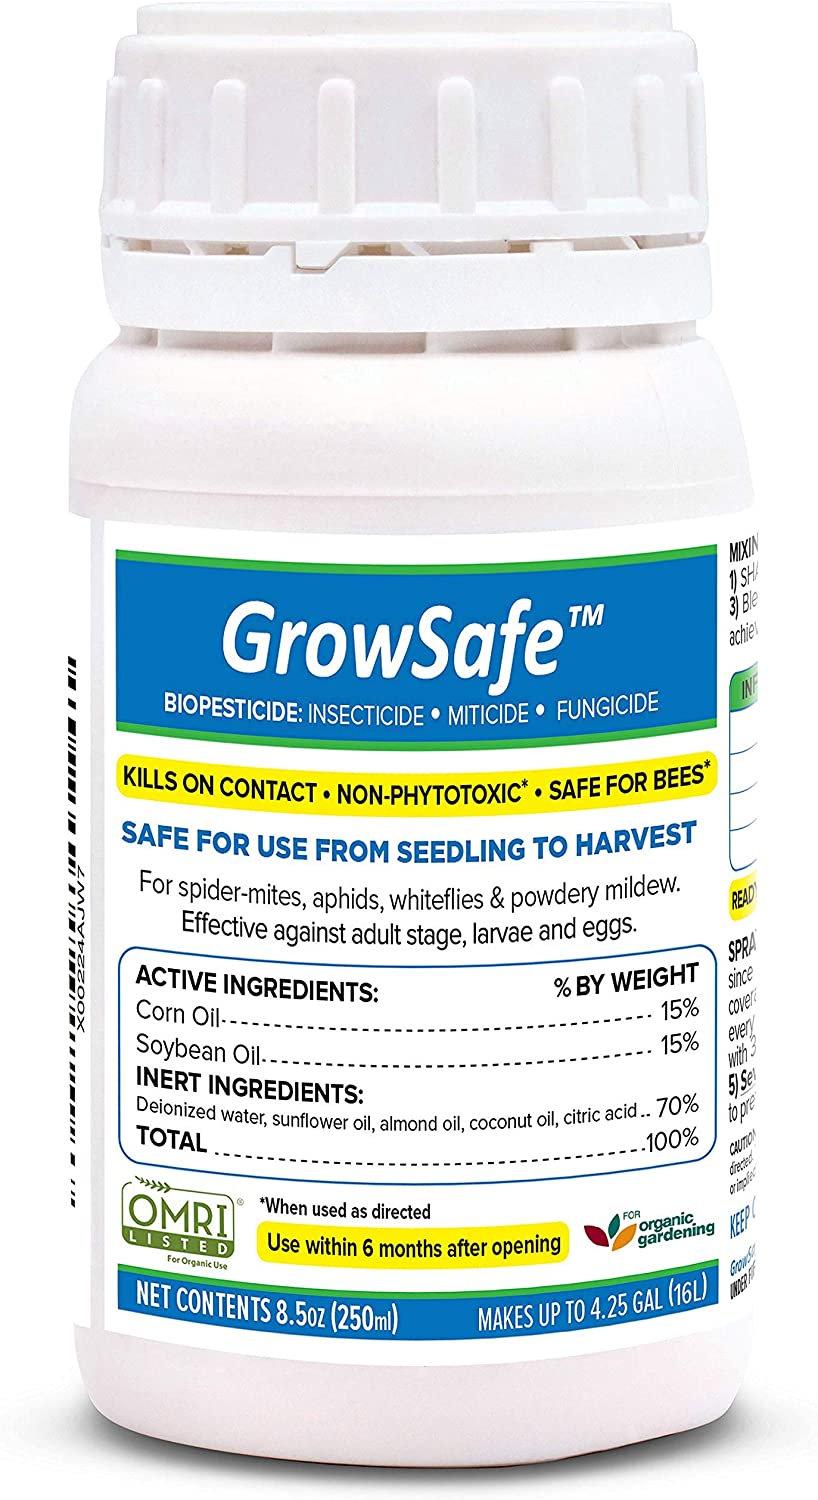 AgroMagen, GrowSafe Bio-Pesticide, Natural Miticide, Fungicide and Insecticide, for Organic Gardening, Non-Toxic, Concentrate (8.5 Ounce)